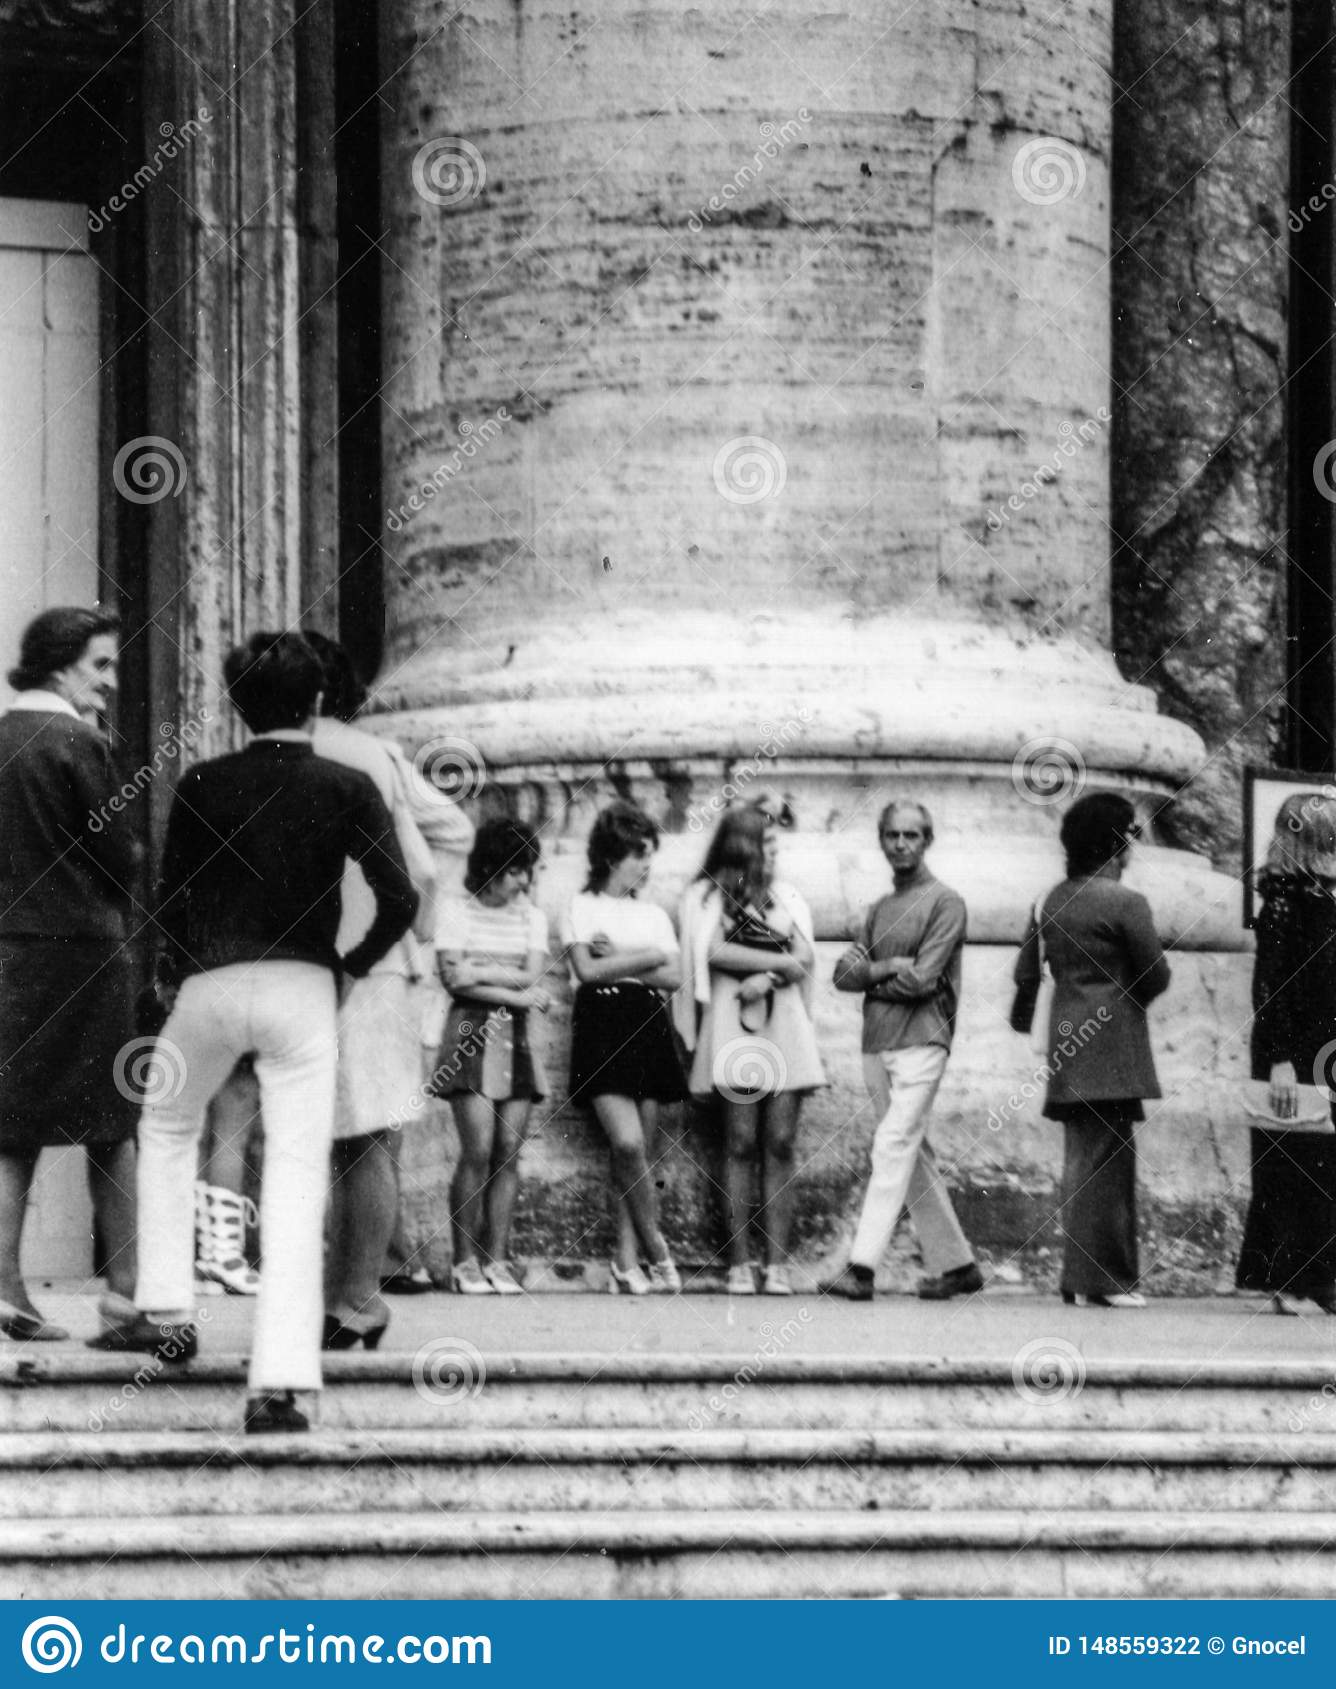 Rome, Italy, 1970 - Three girls in miniskirts rest in the crowd at the foot of a column